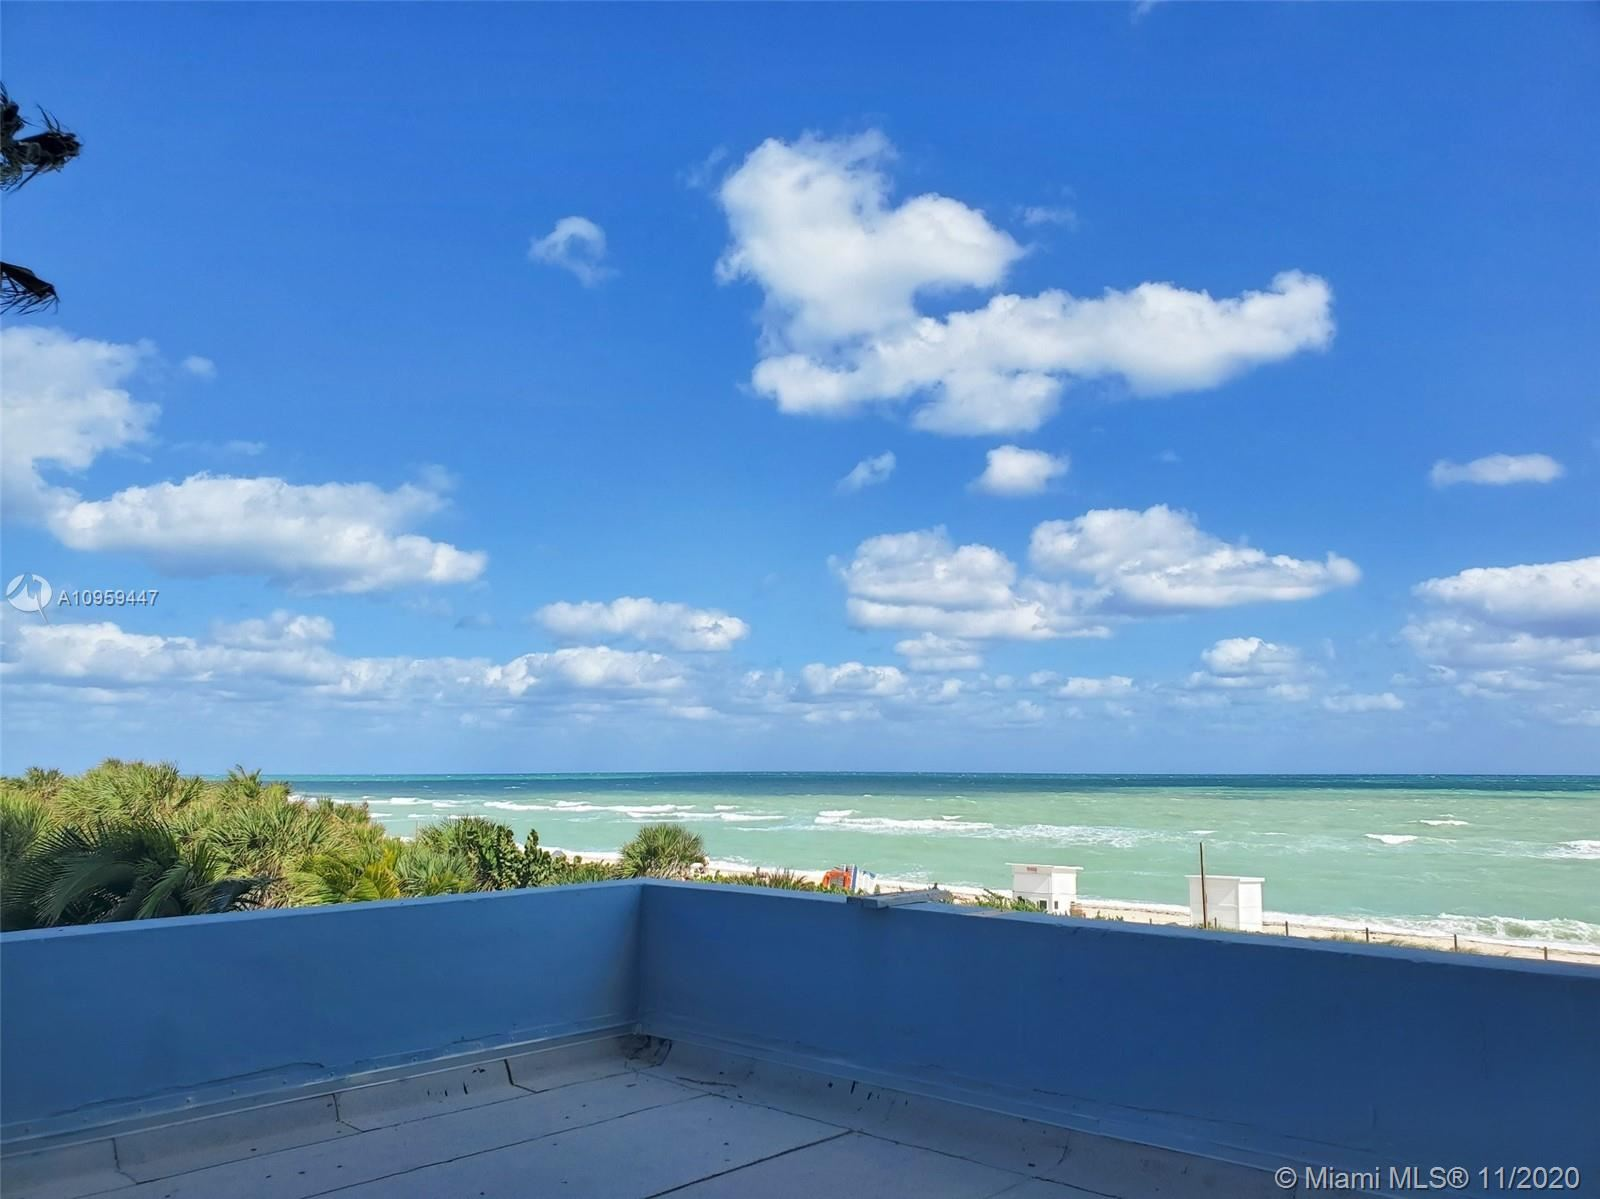 6969 Collins Ave #315, Miami Beach, FL 33141 - #: A10959447